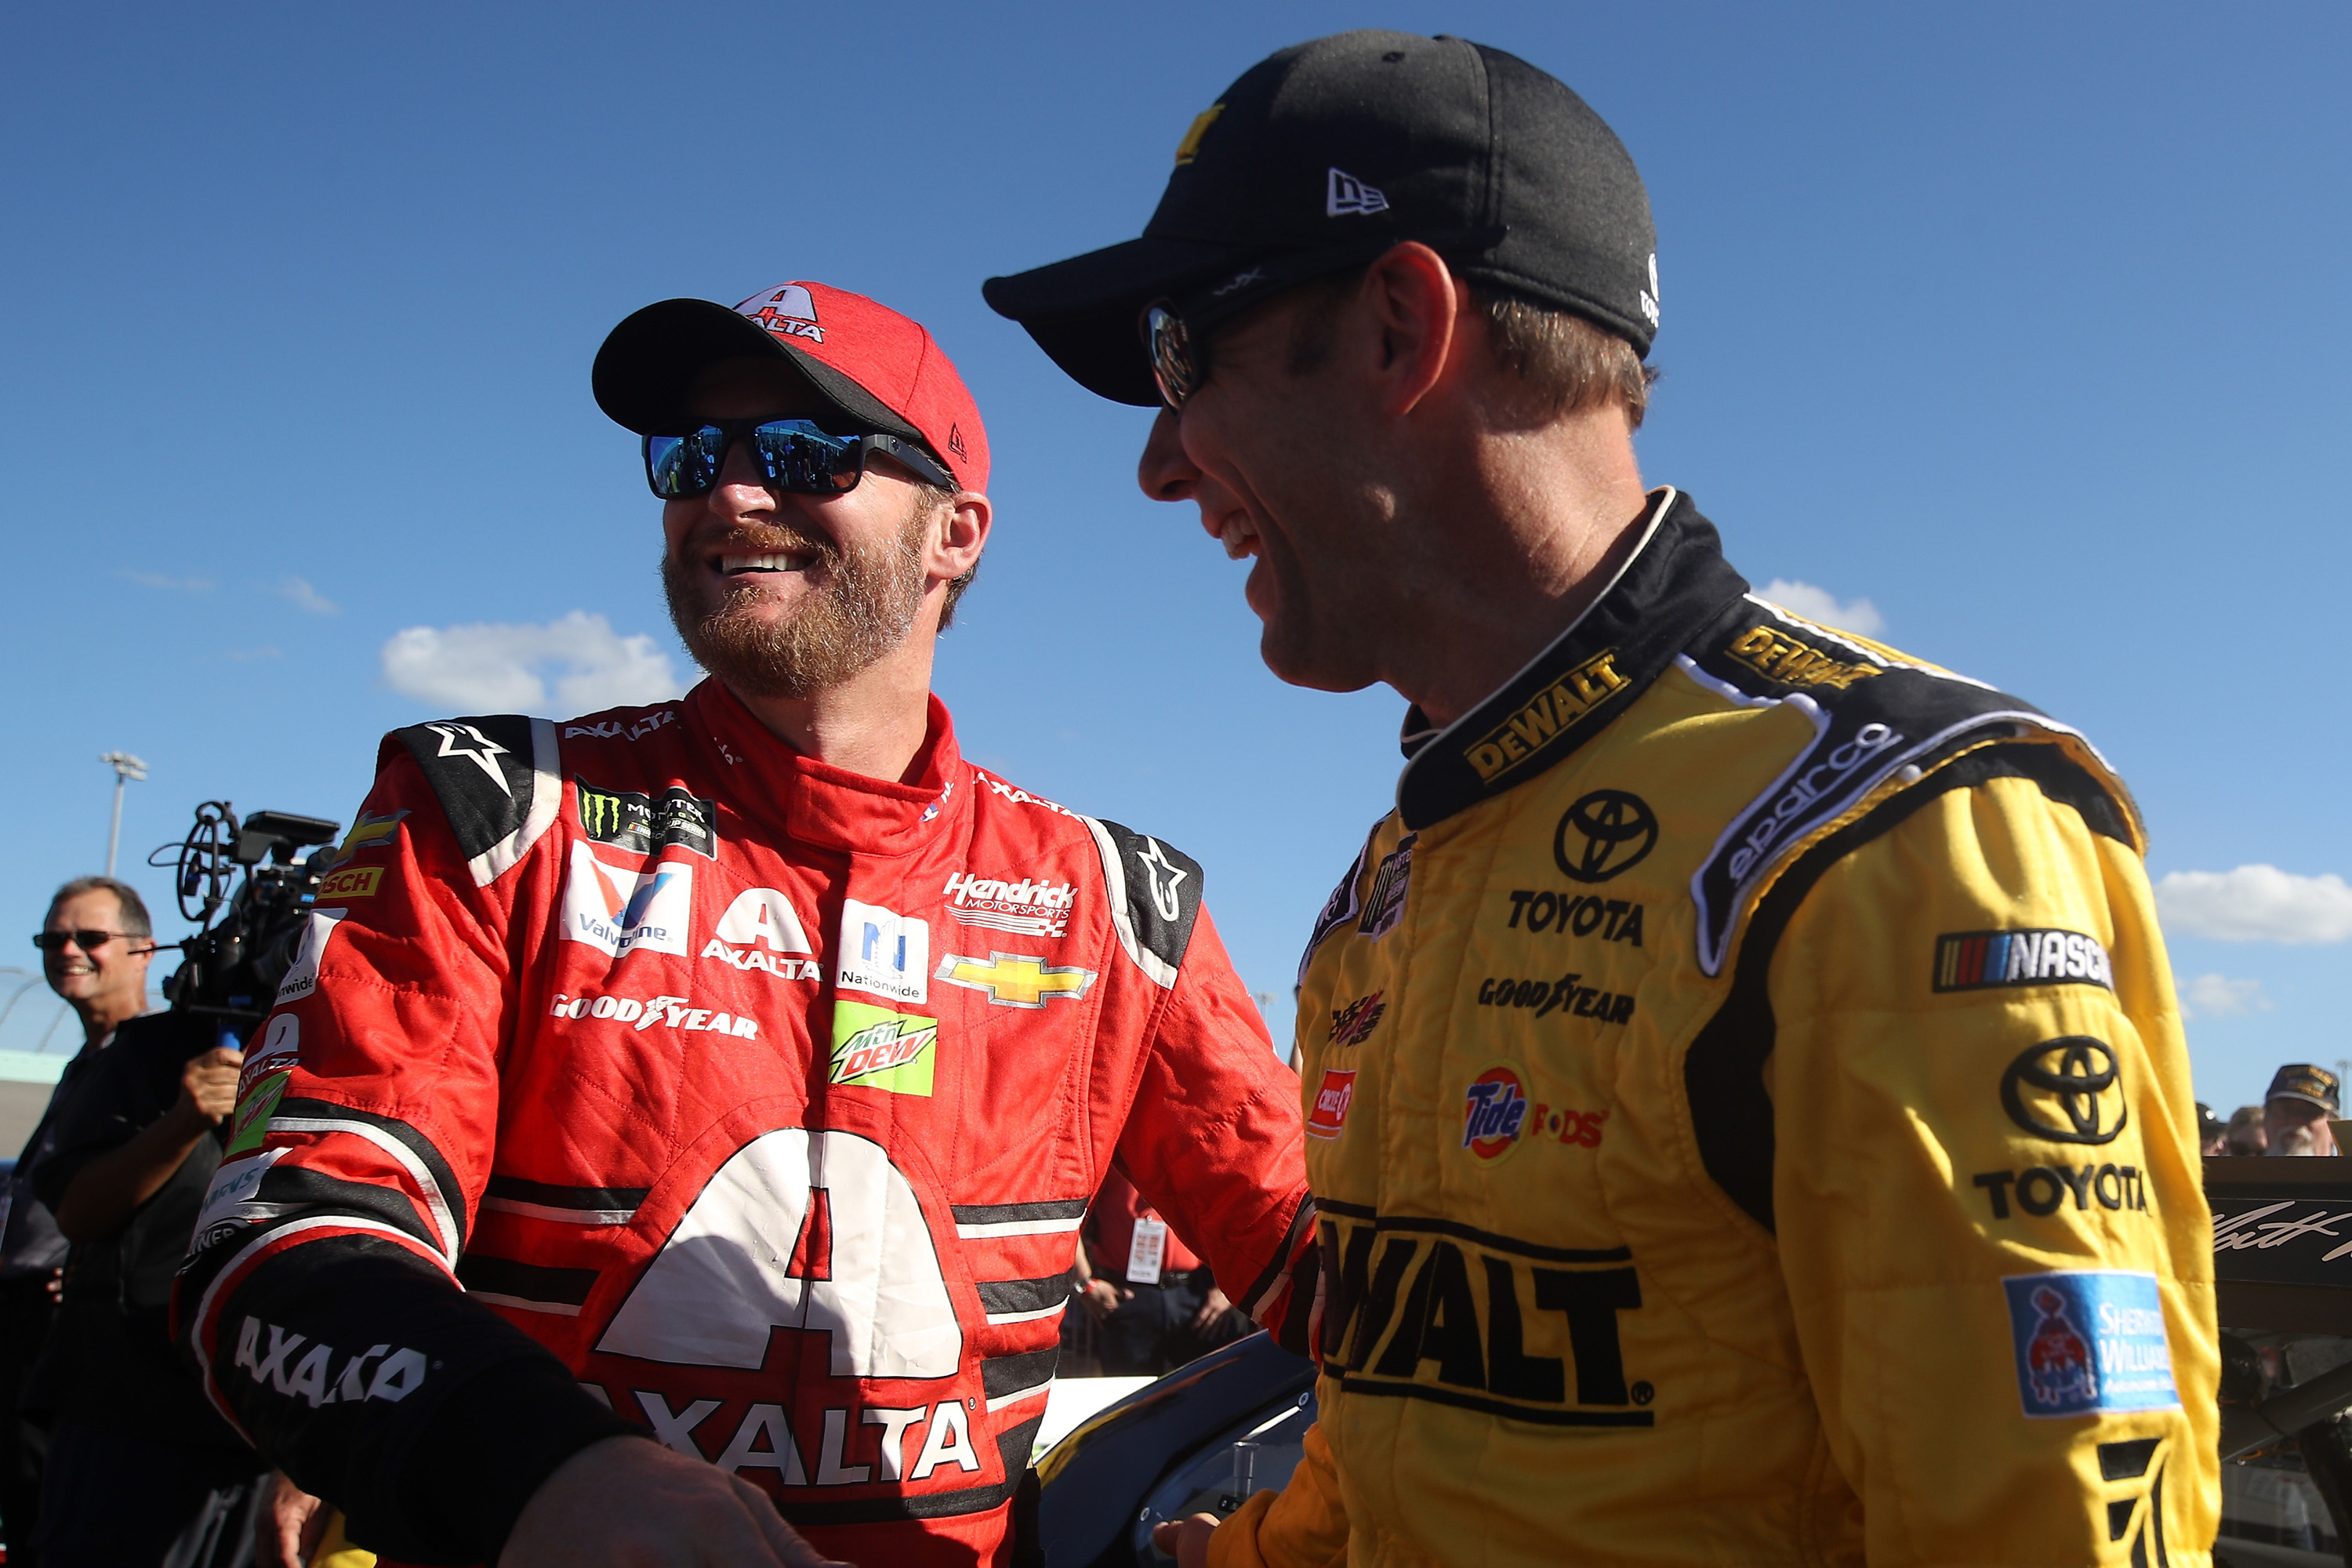 Dale Earnhardt Jr and Matt Kenseth